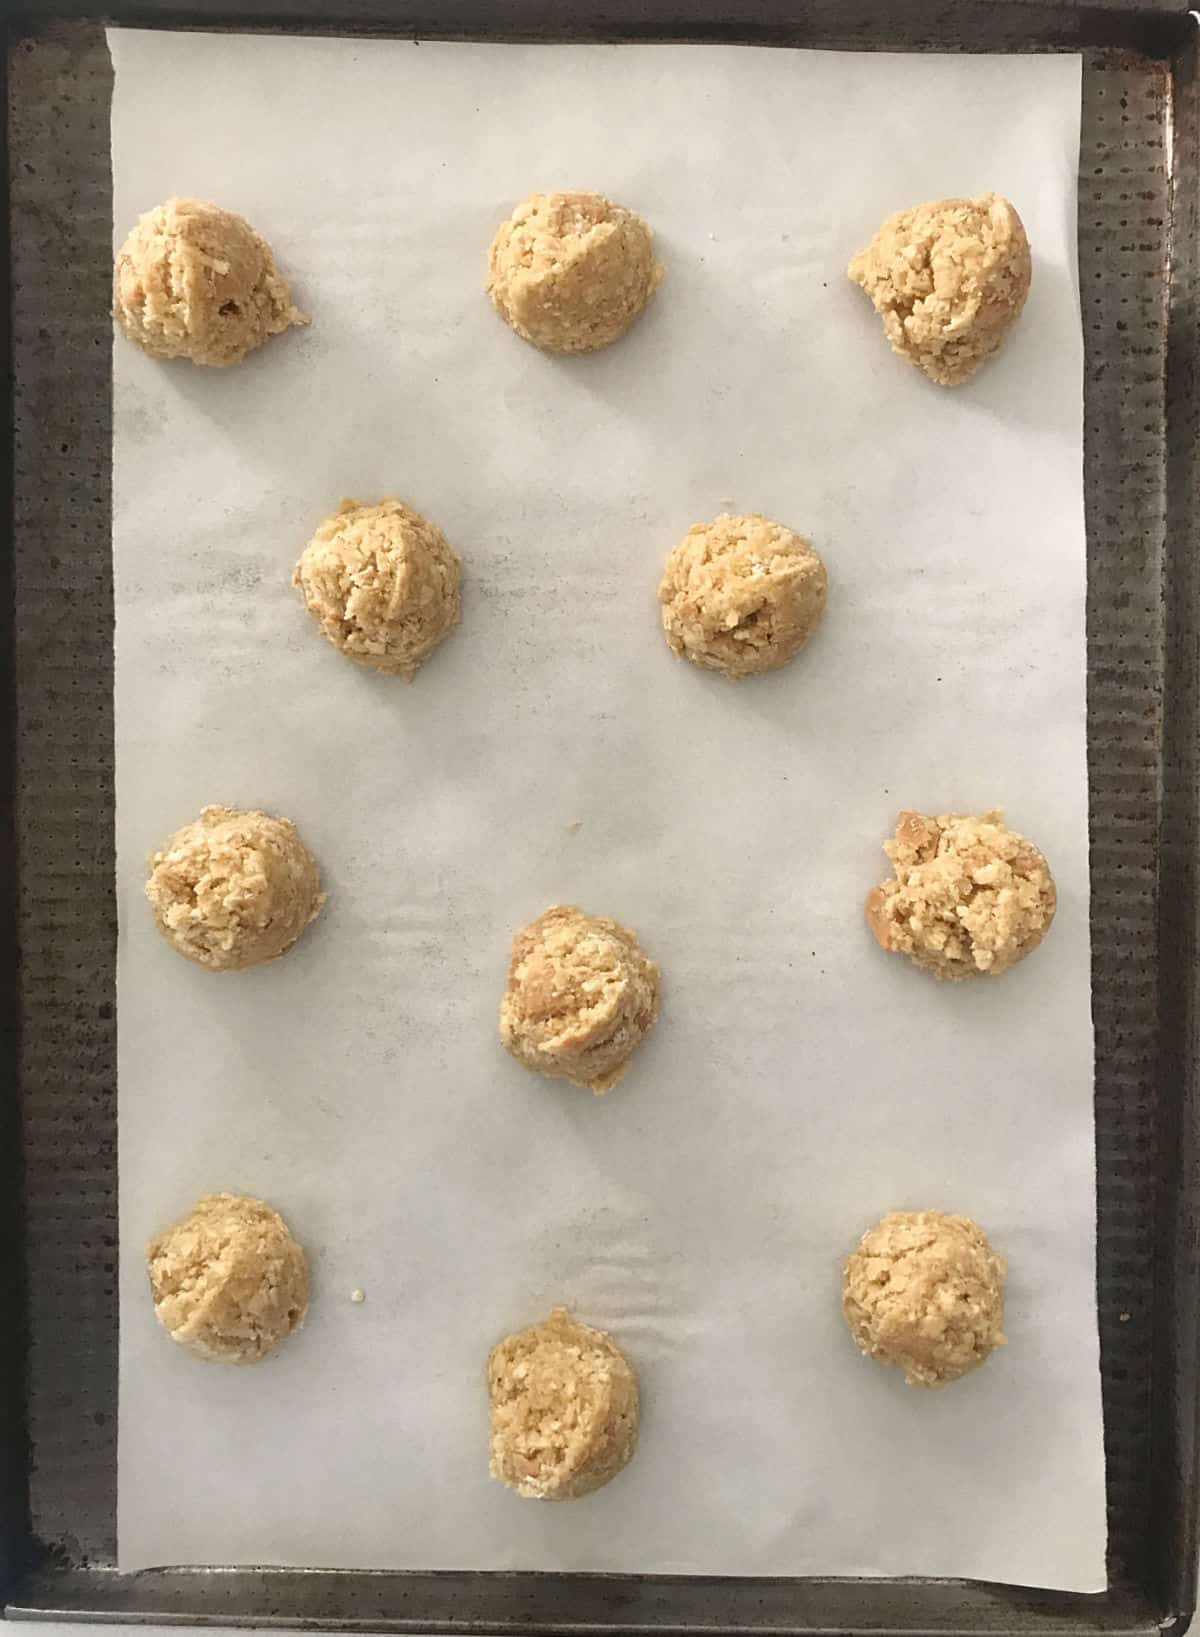 White parchment paper with unbaked oatmeal cookie mounds on a dark metal sheet